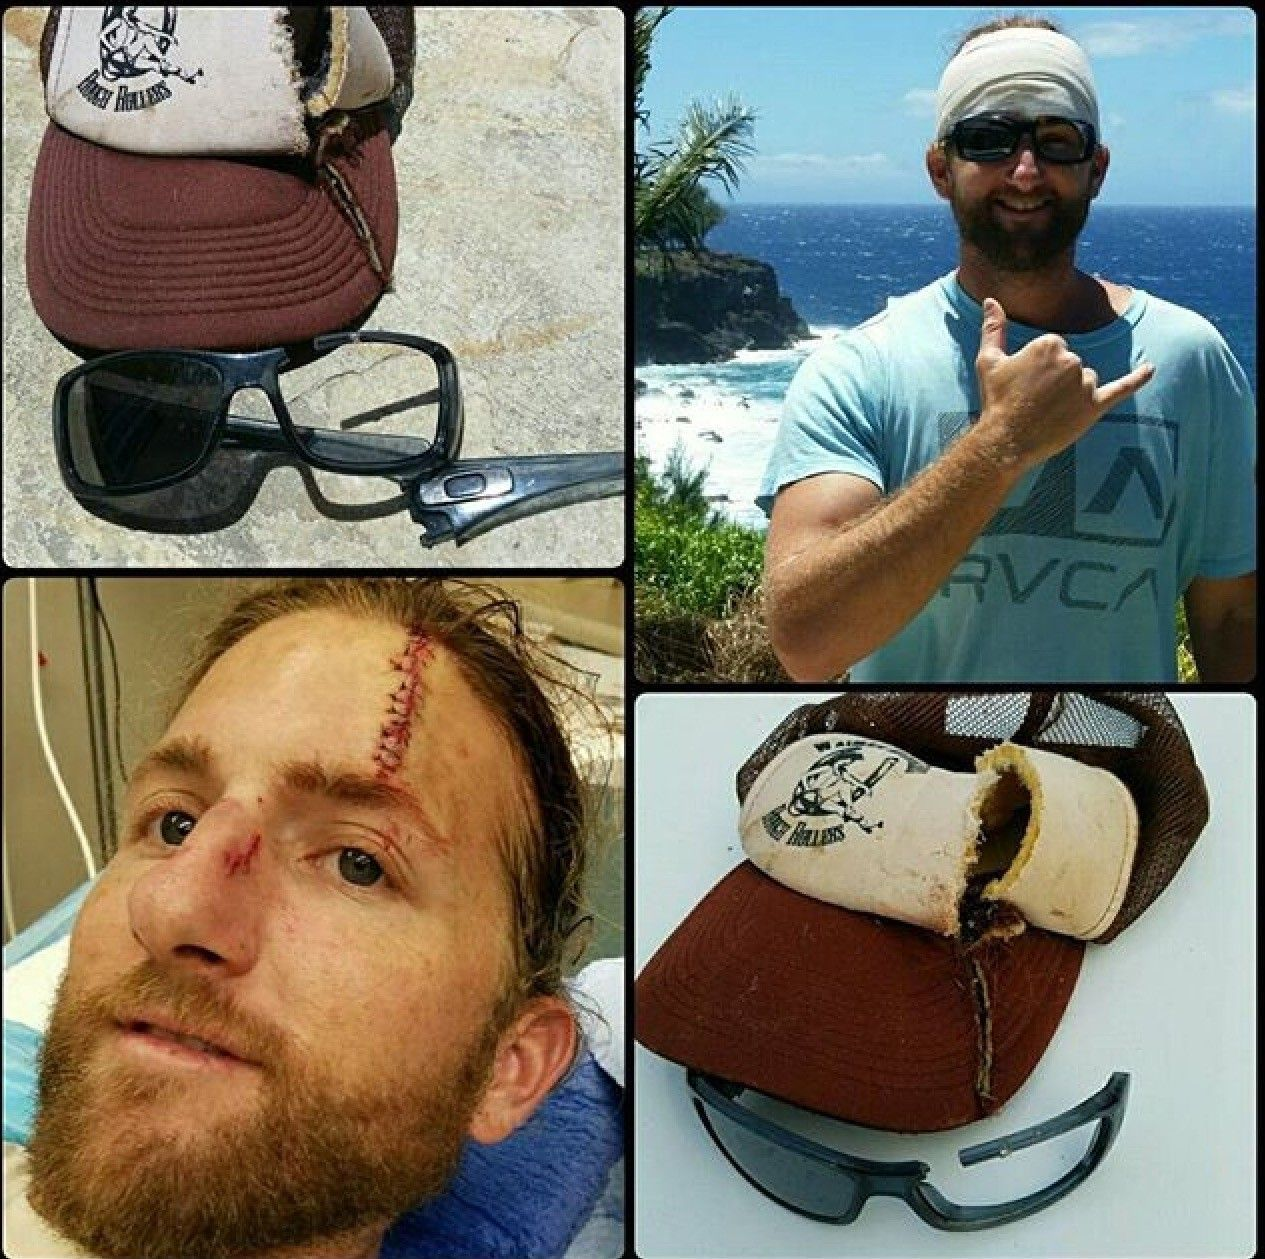 Has A Pair Of Oakley Sunglasses Ever Saved You From Possible Eye Injury? - image.jpeg